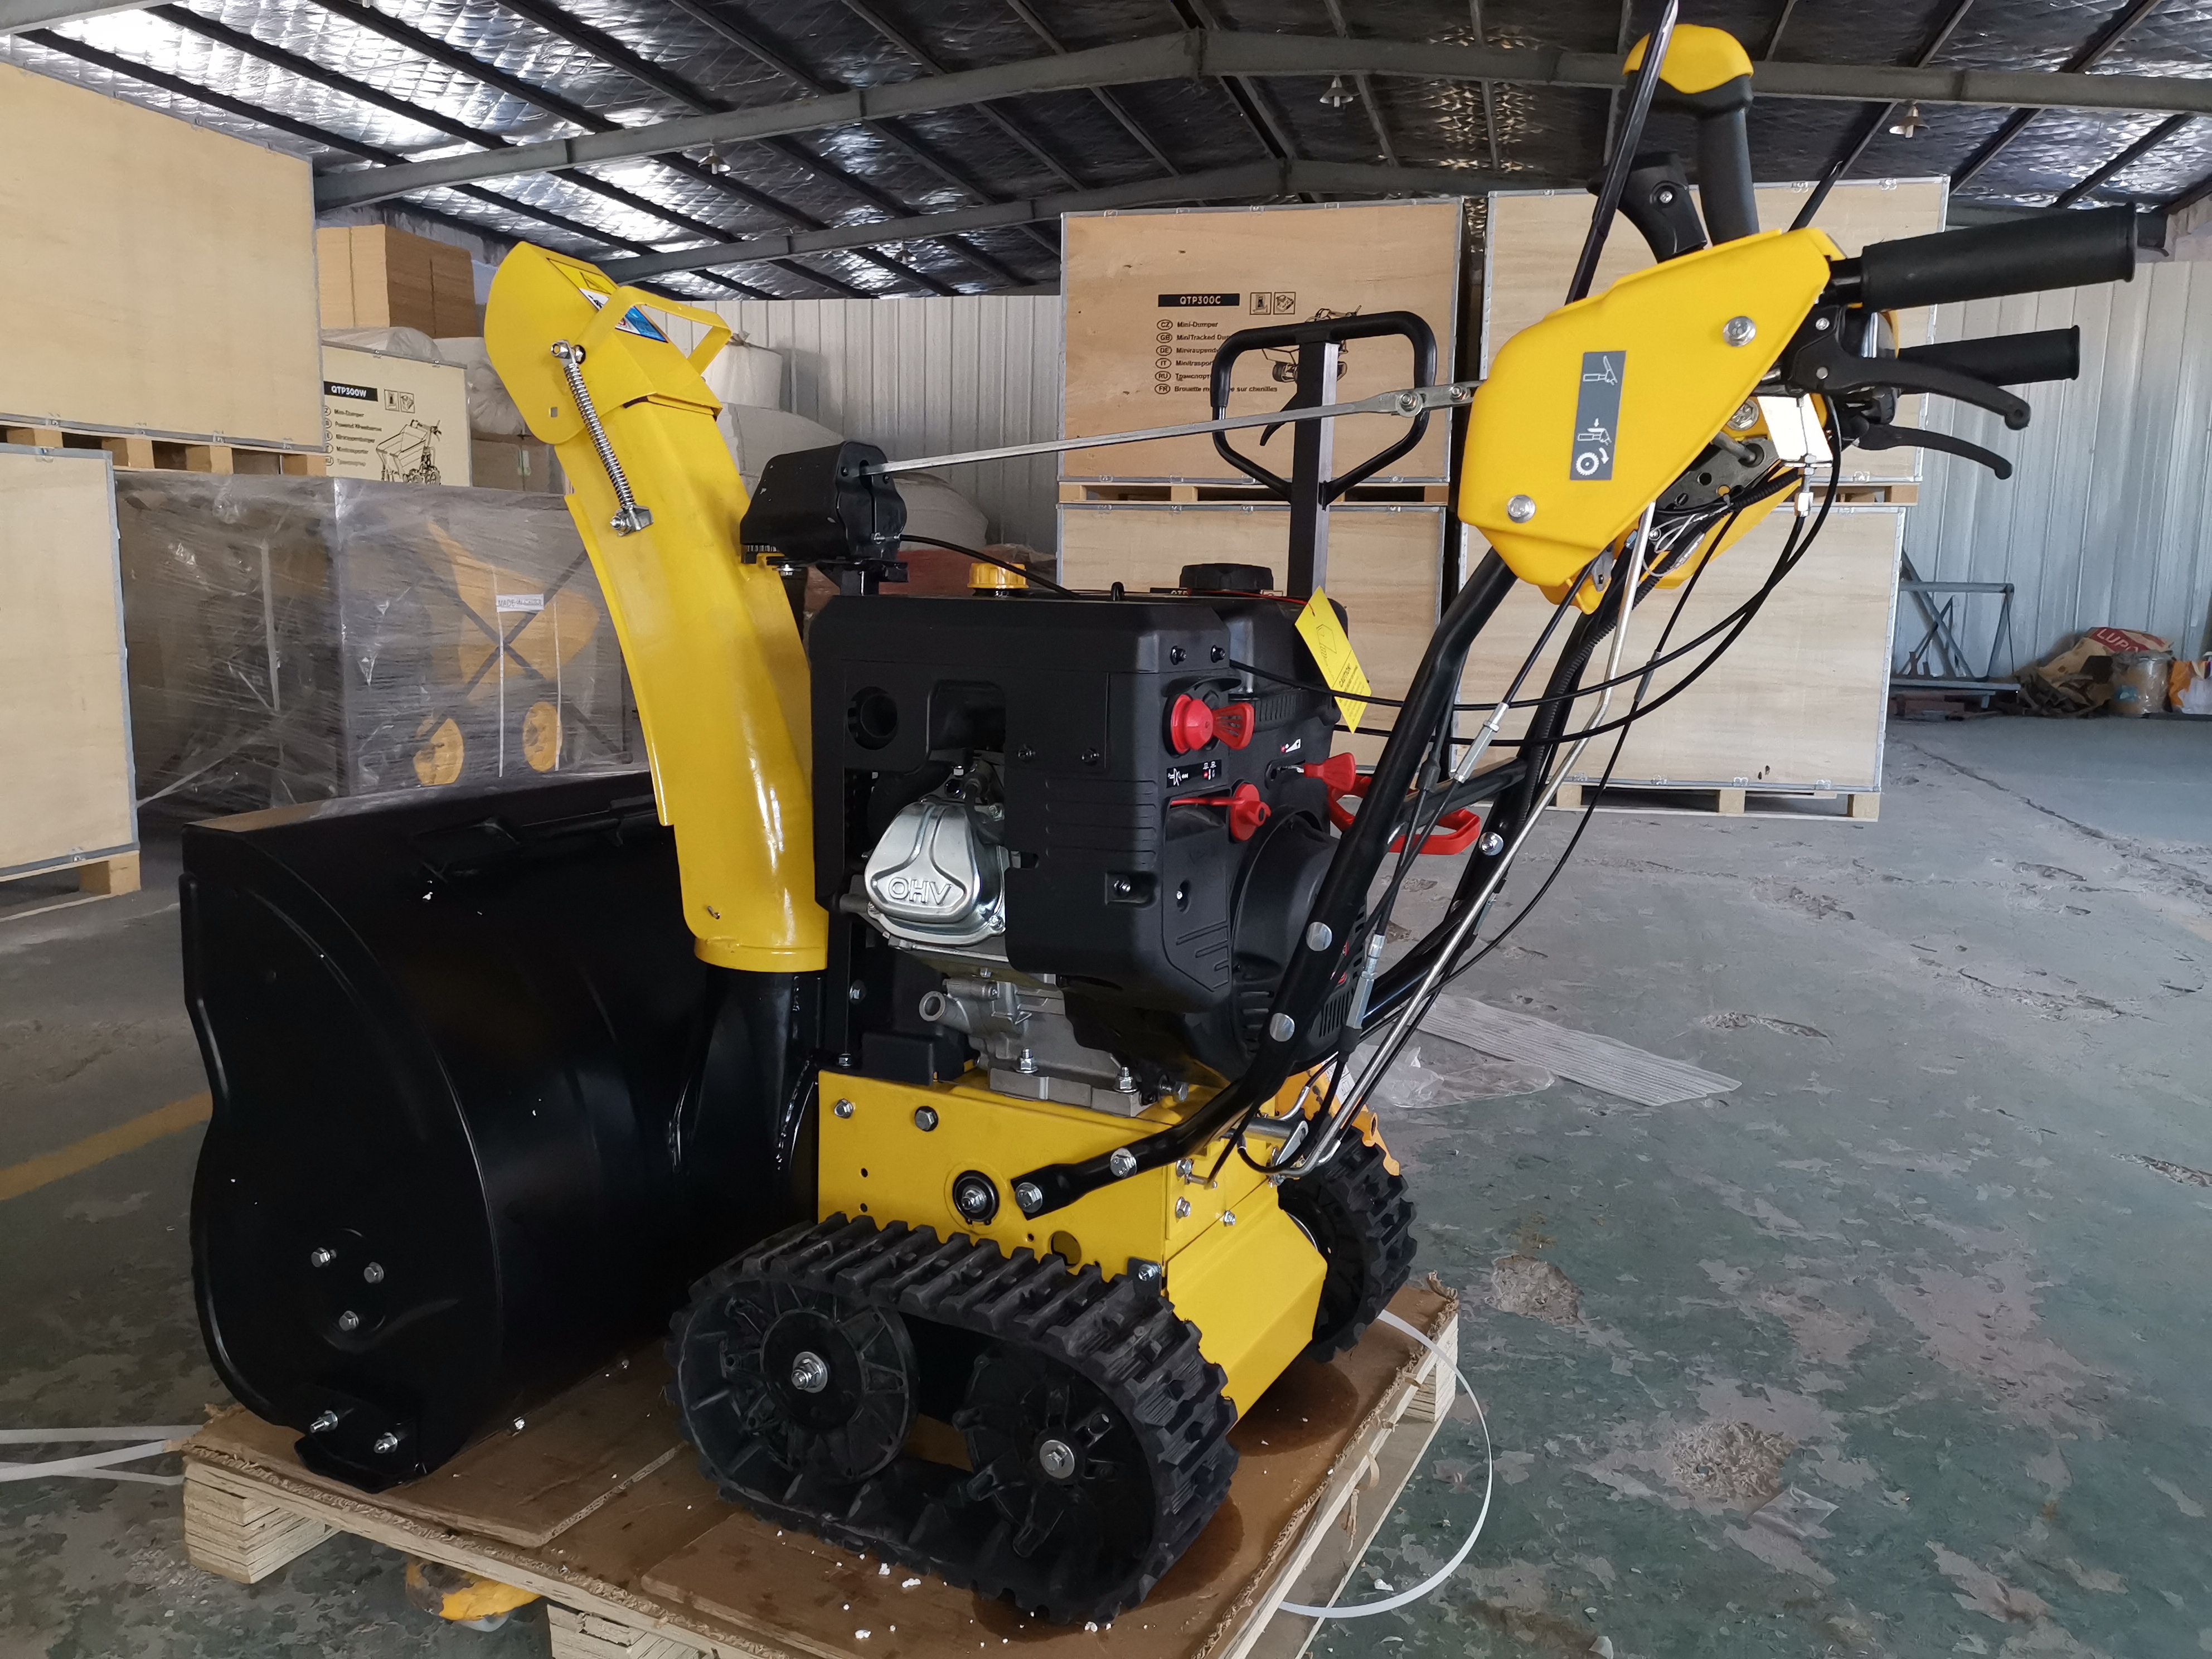 Two Stage Snow Blowers Are Best For Clearing Snow On Gravel Since The Auger Doesn T Touch The Ground But The Machines Are Relatively Heavy And Expen